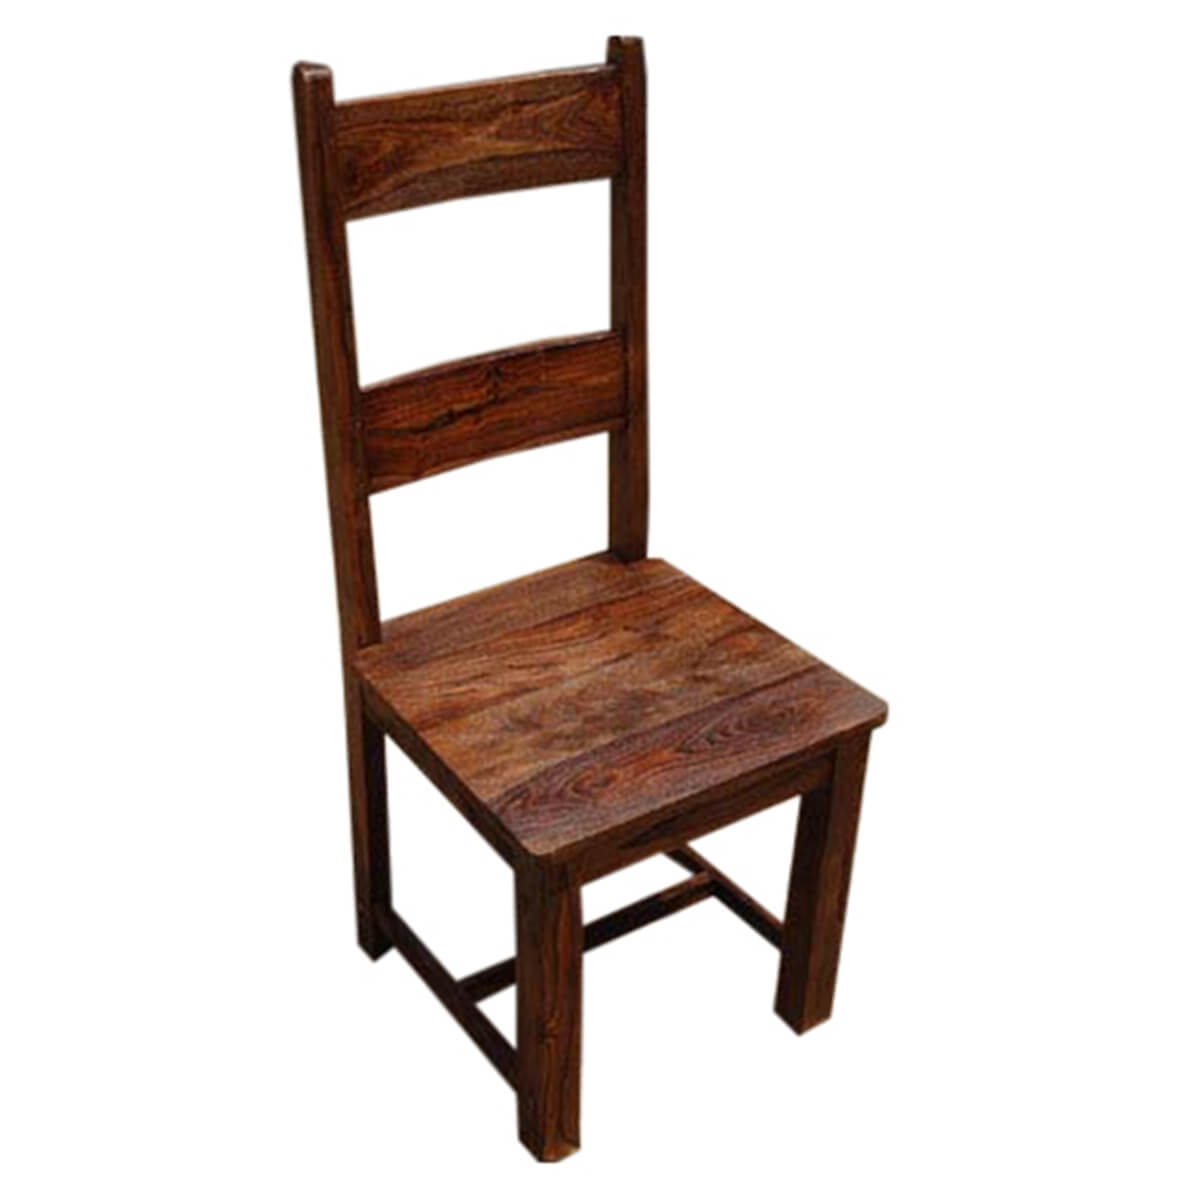 Rustic Chairs For Dining Room: Rustic Solid Wood Appalachian Dining Room Table & Chair Set